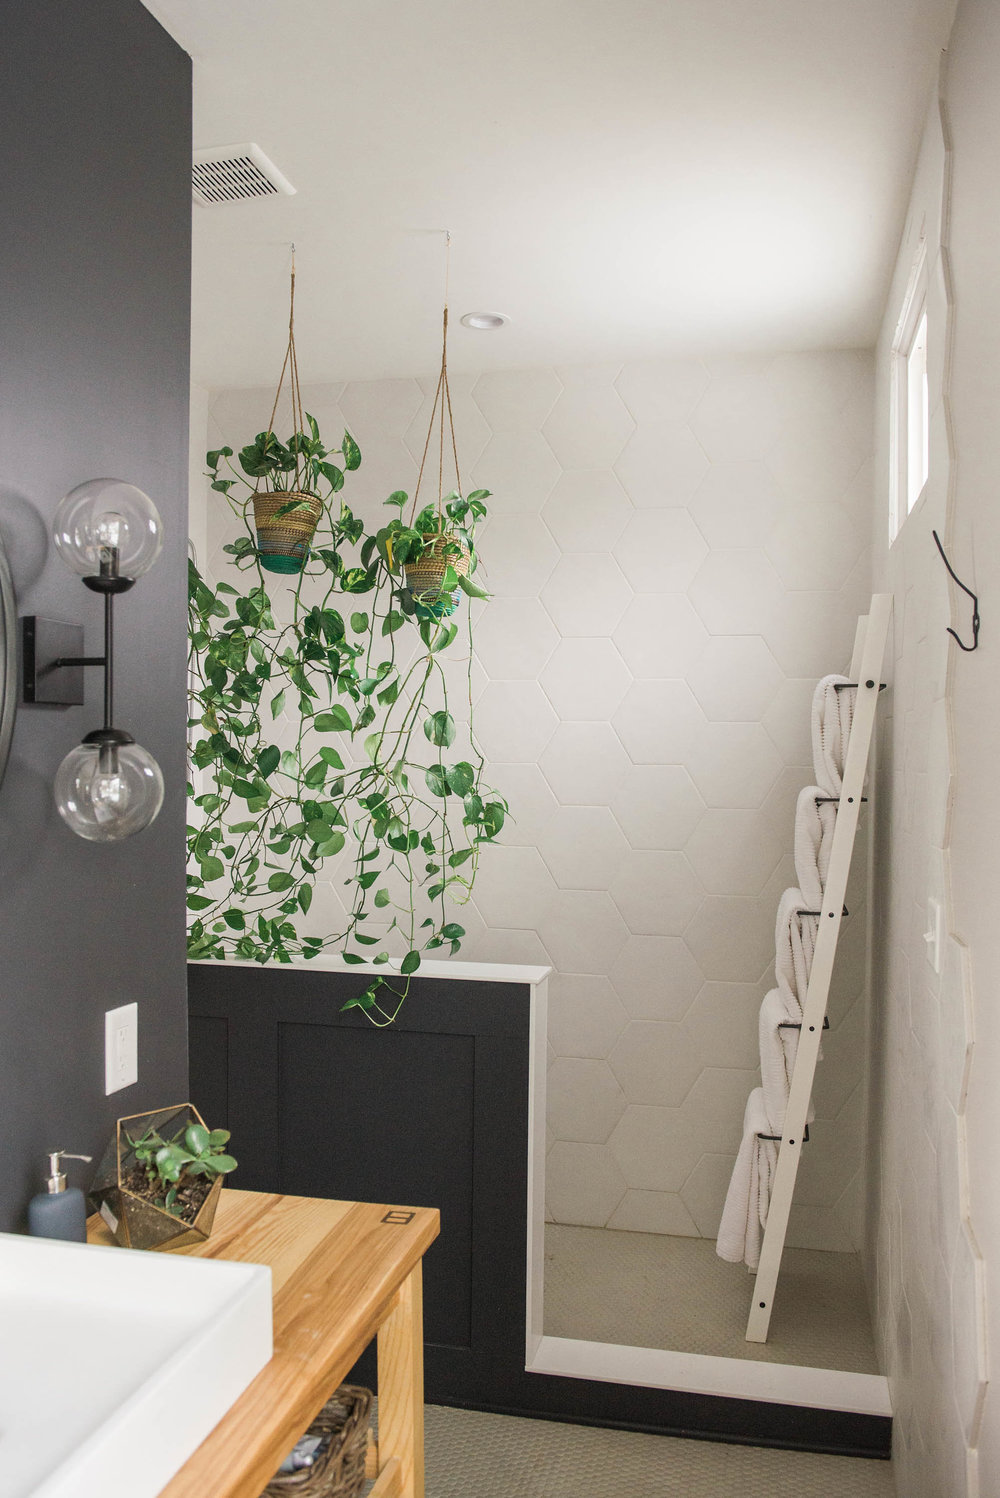 hanging-plants-interior-design.jpg